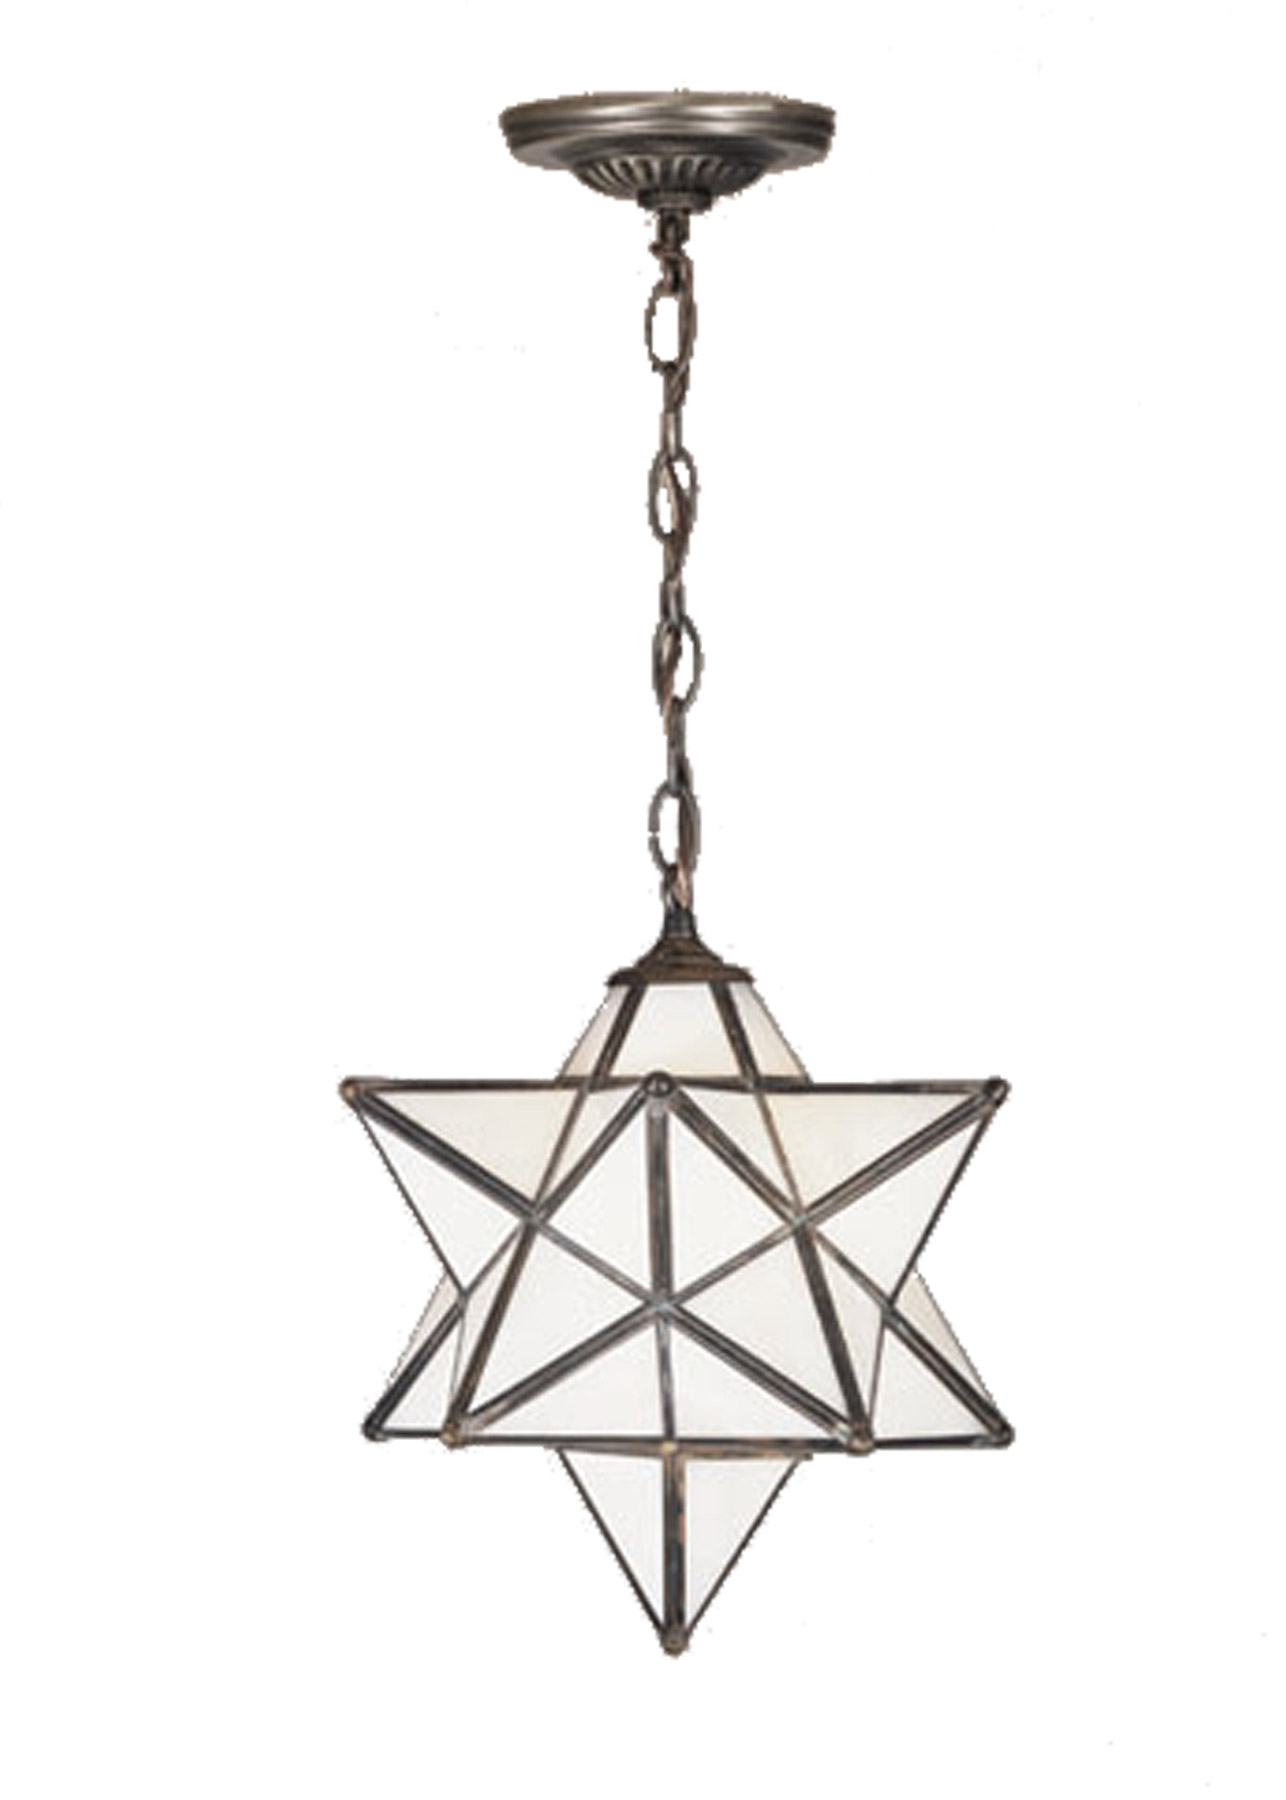 21841 moravian star hanging lamp meyda 21841 moravian star hanging lamp arubaitofo Image collections